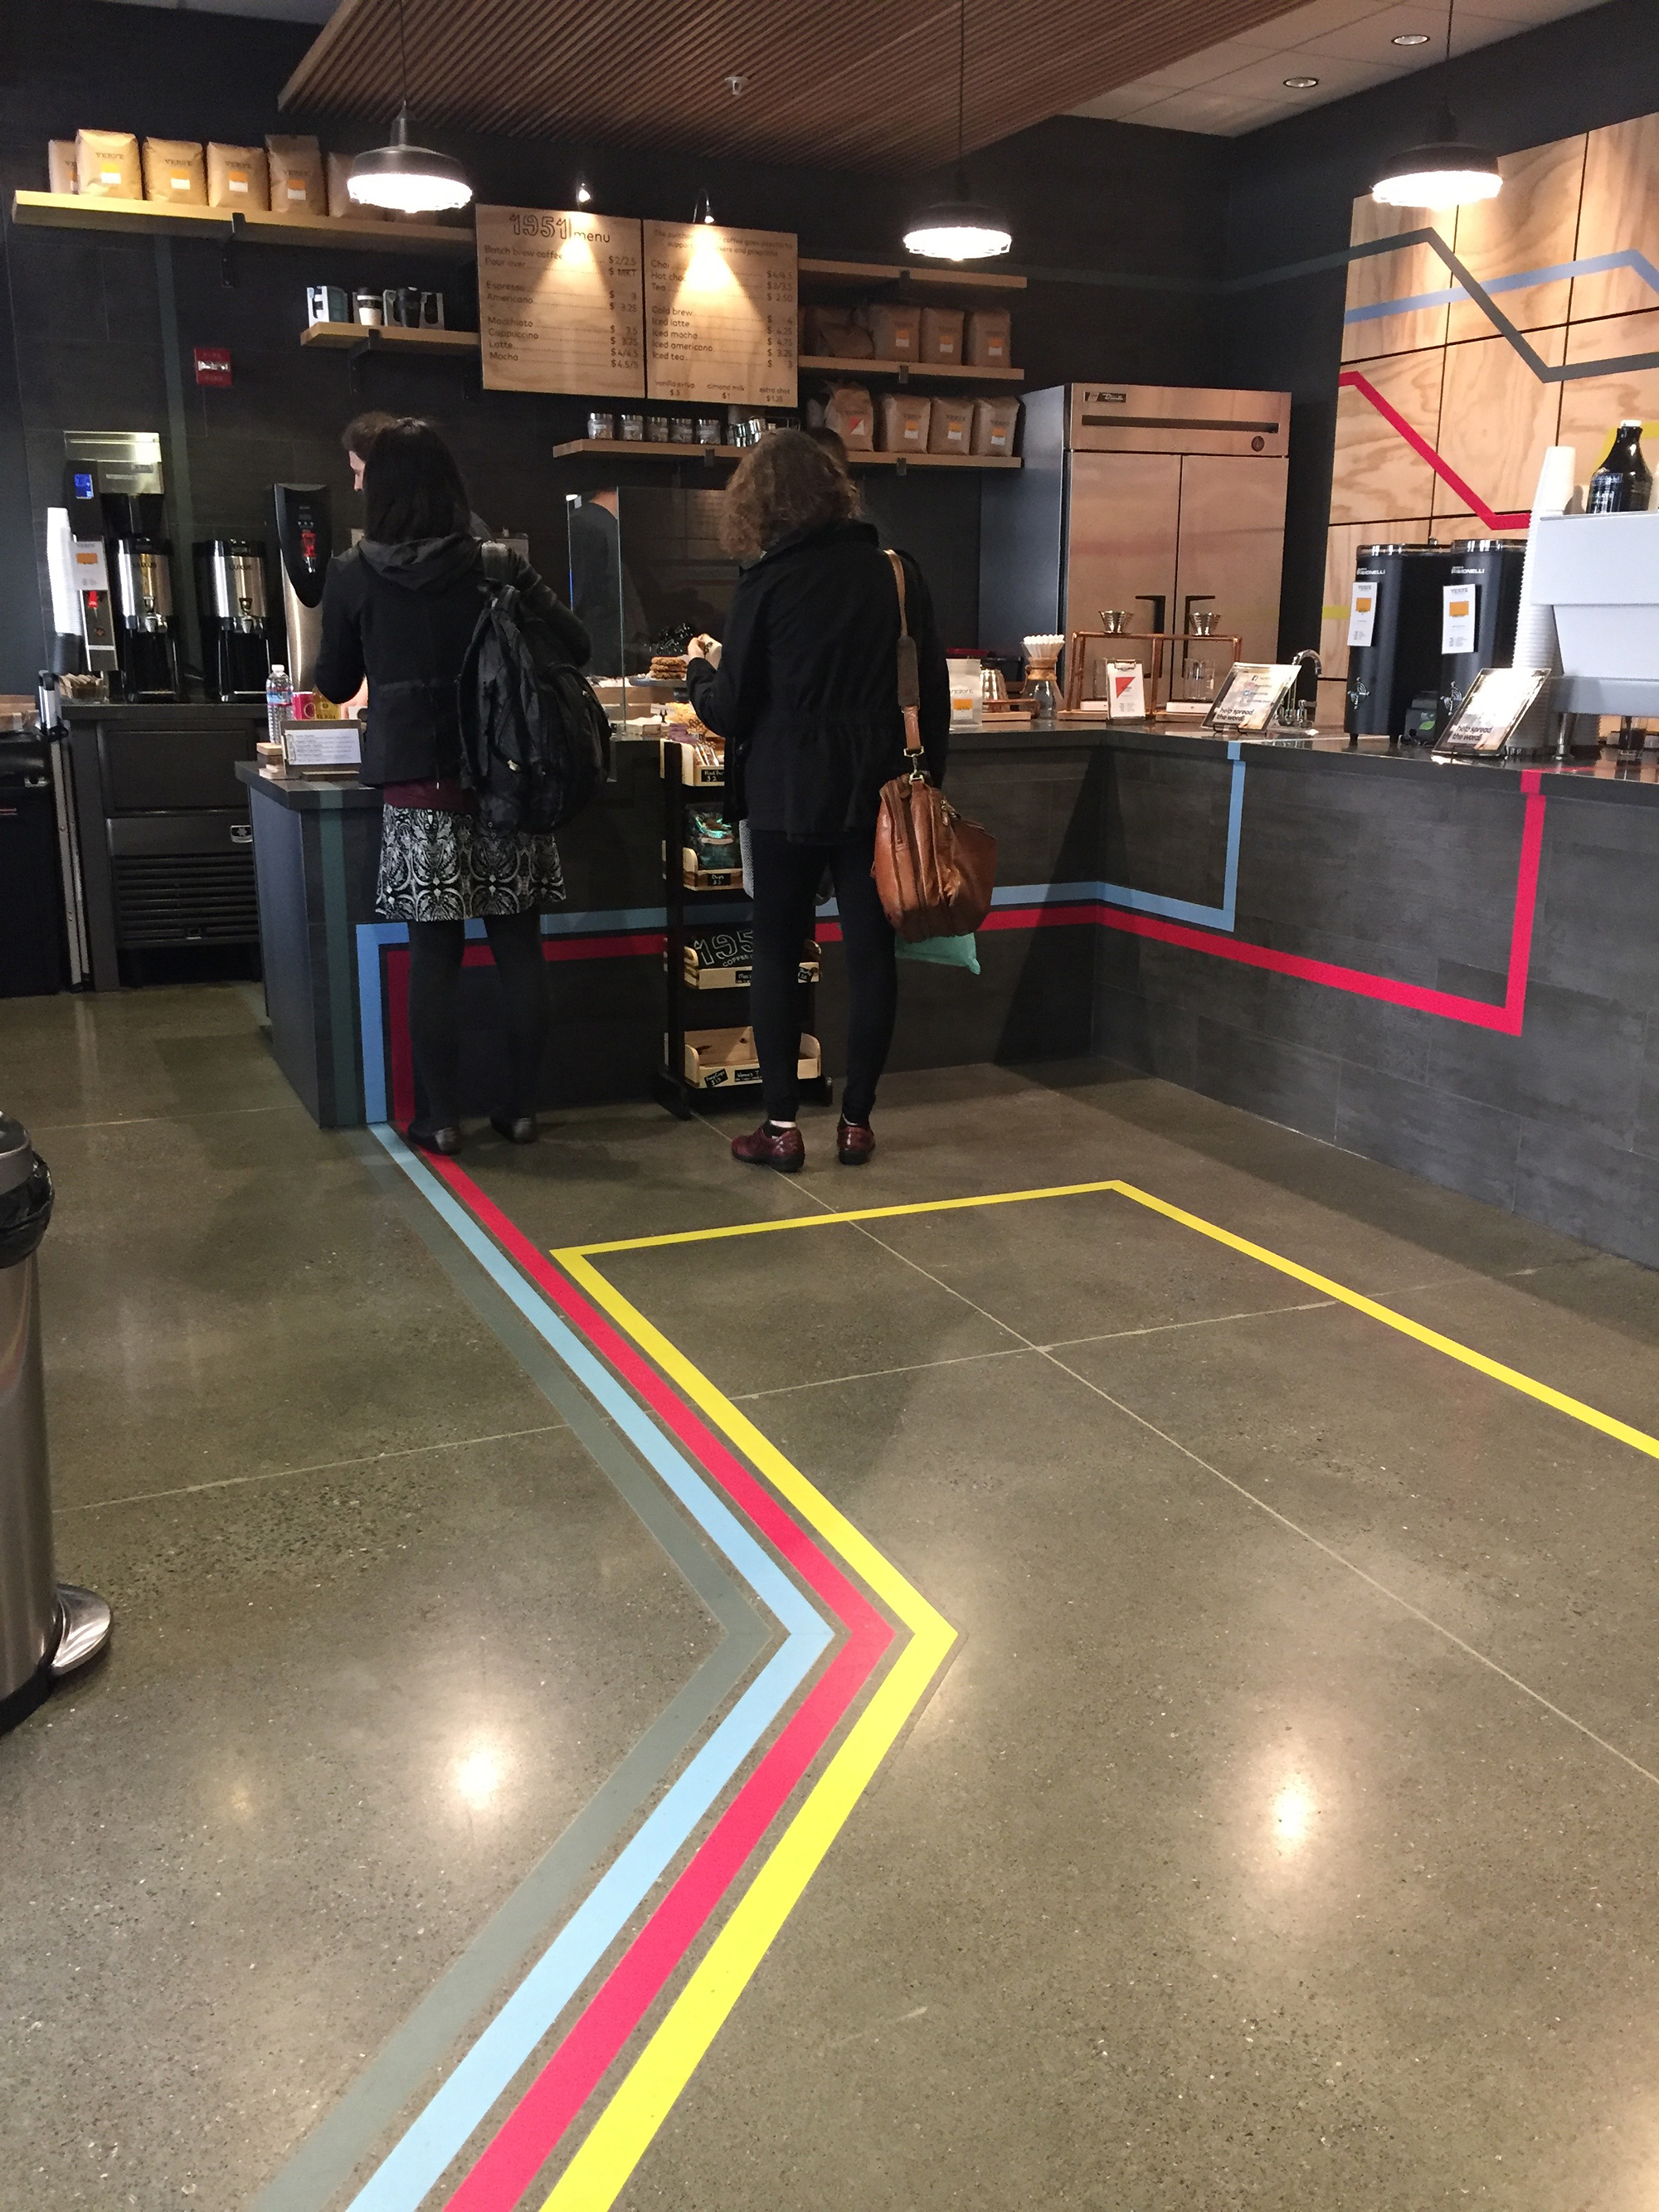 The colorful stripes on the cafe's floor suggest the long journey to resettlement.